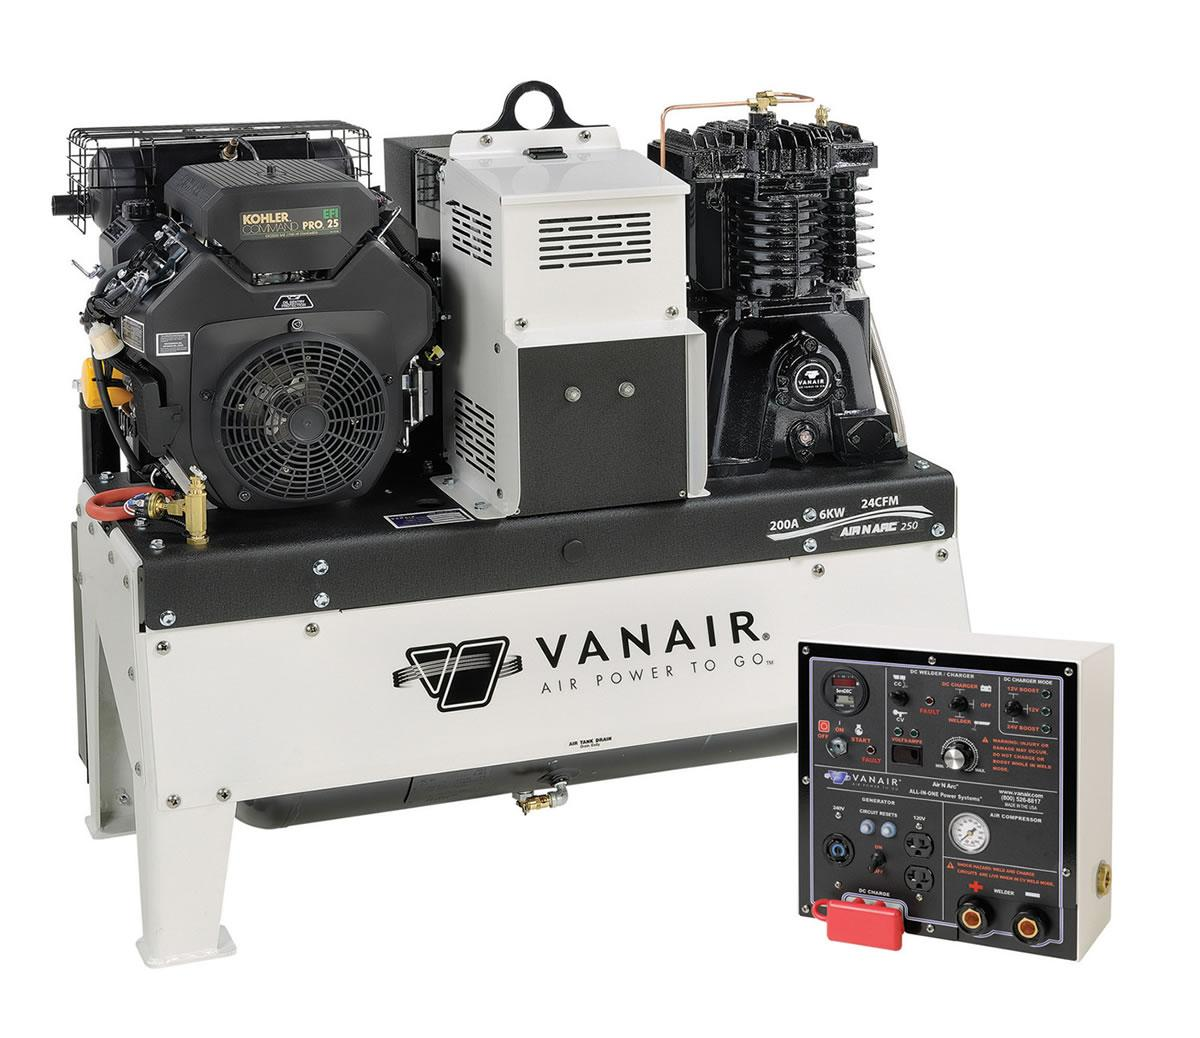 Vanair Air-N-Arc 250 - All-In-One Power System - 050817